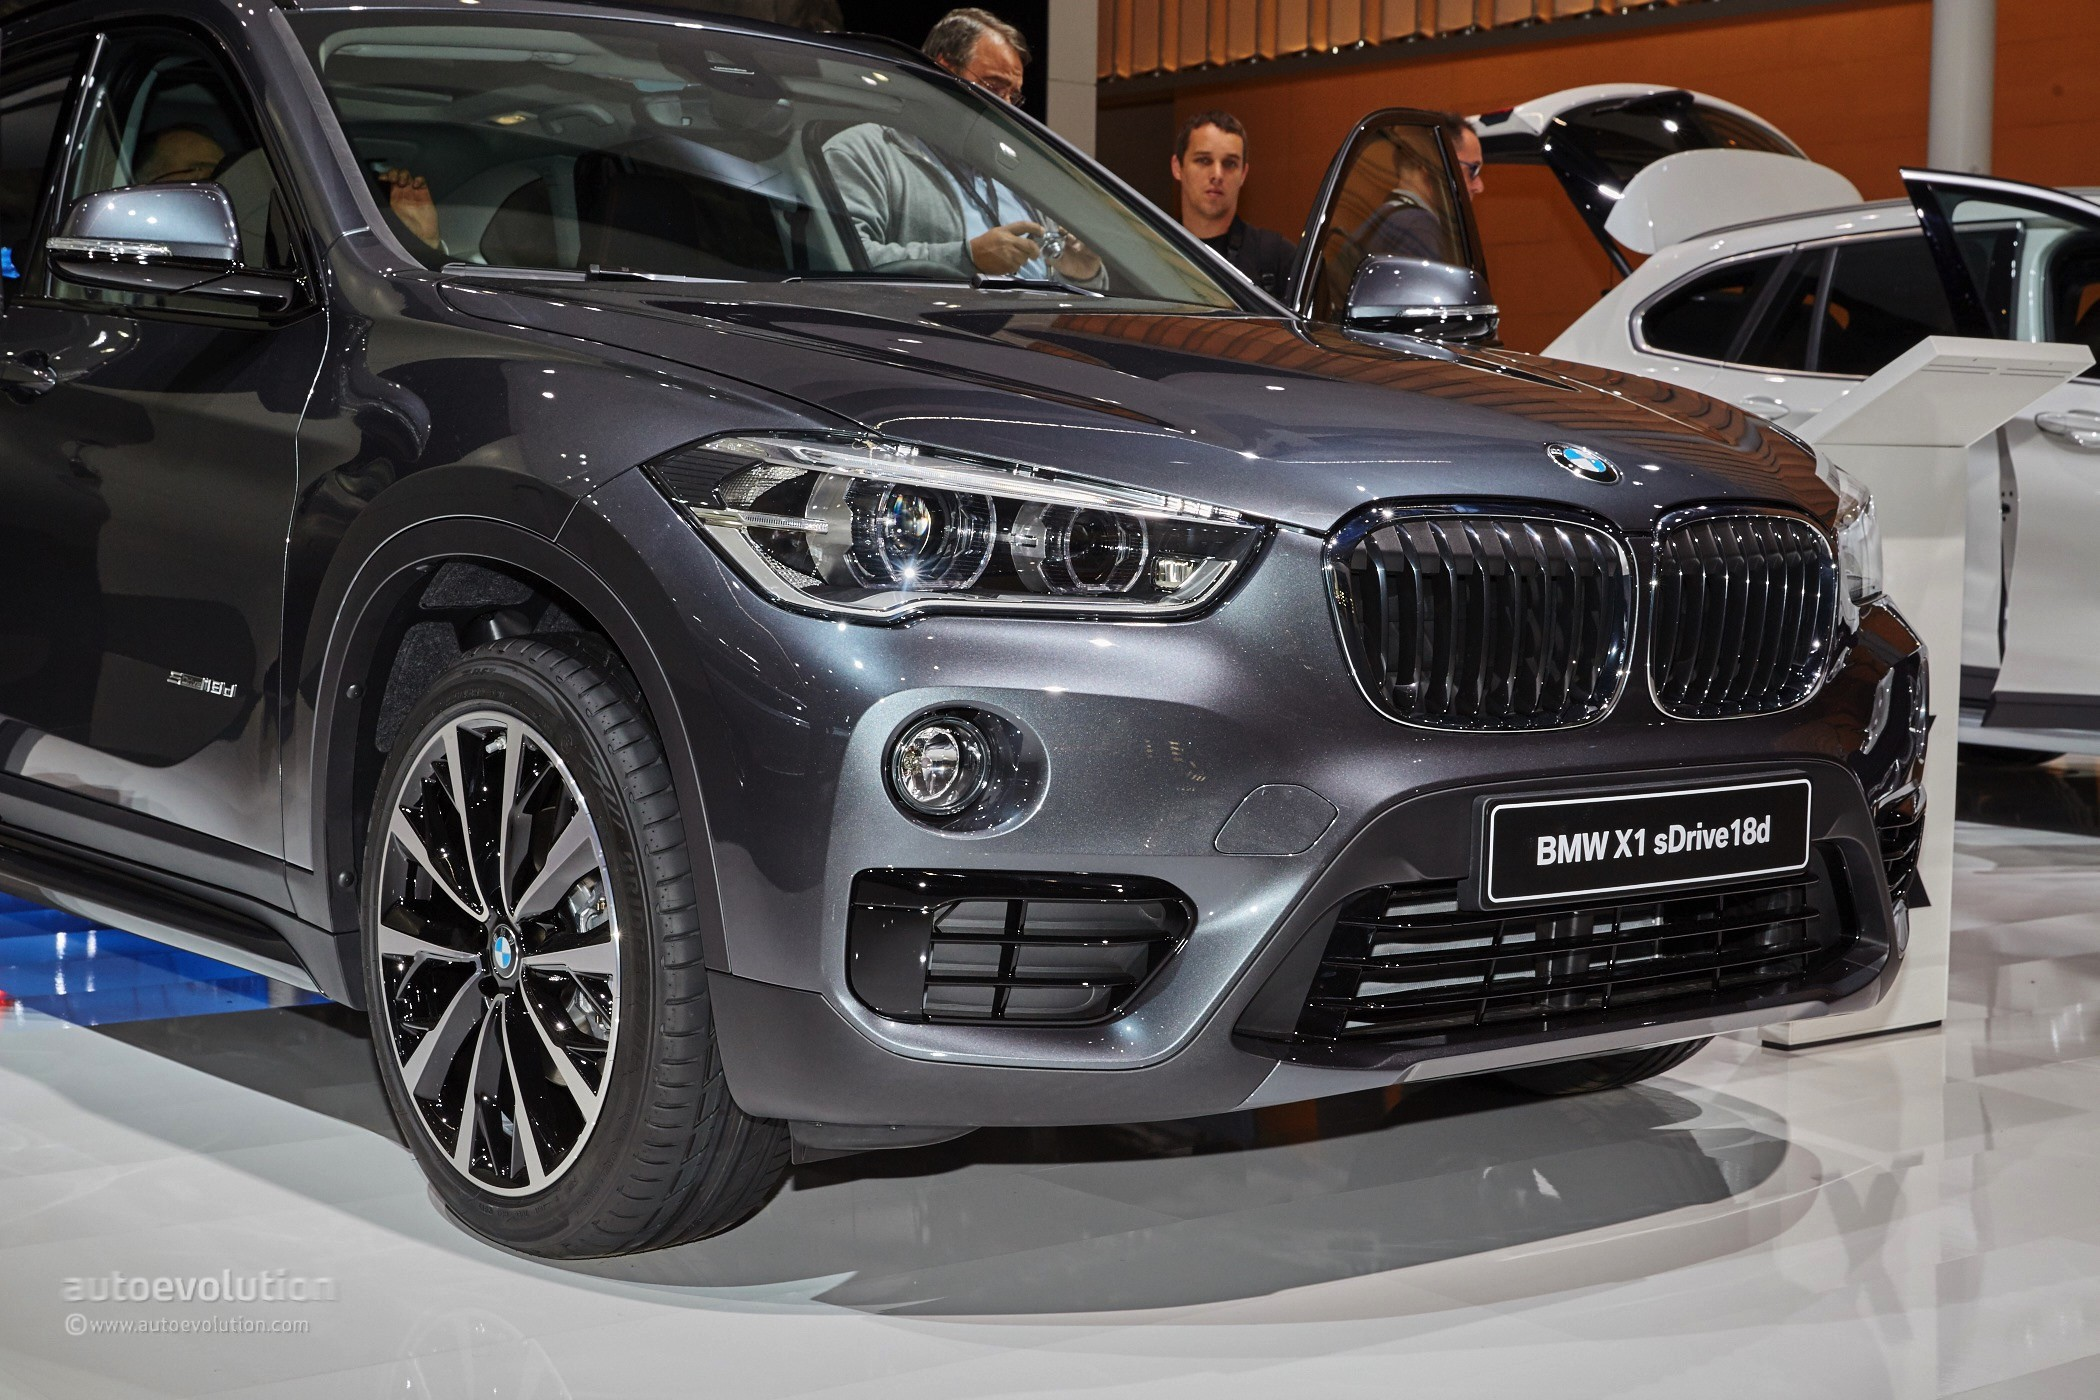 bmw x1 is selling like hot cakes bmw will expand production in second factory autoevolution. Black Bedroom Furniture Sets. Home Design Ideas